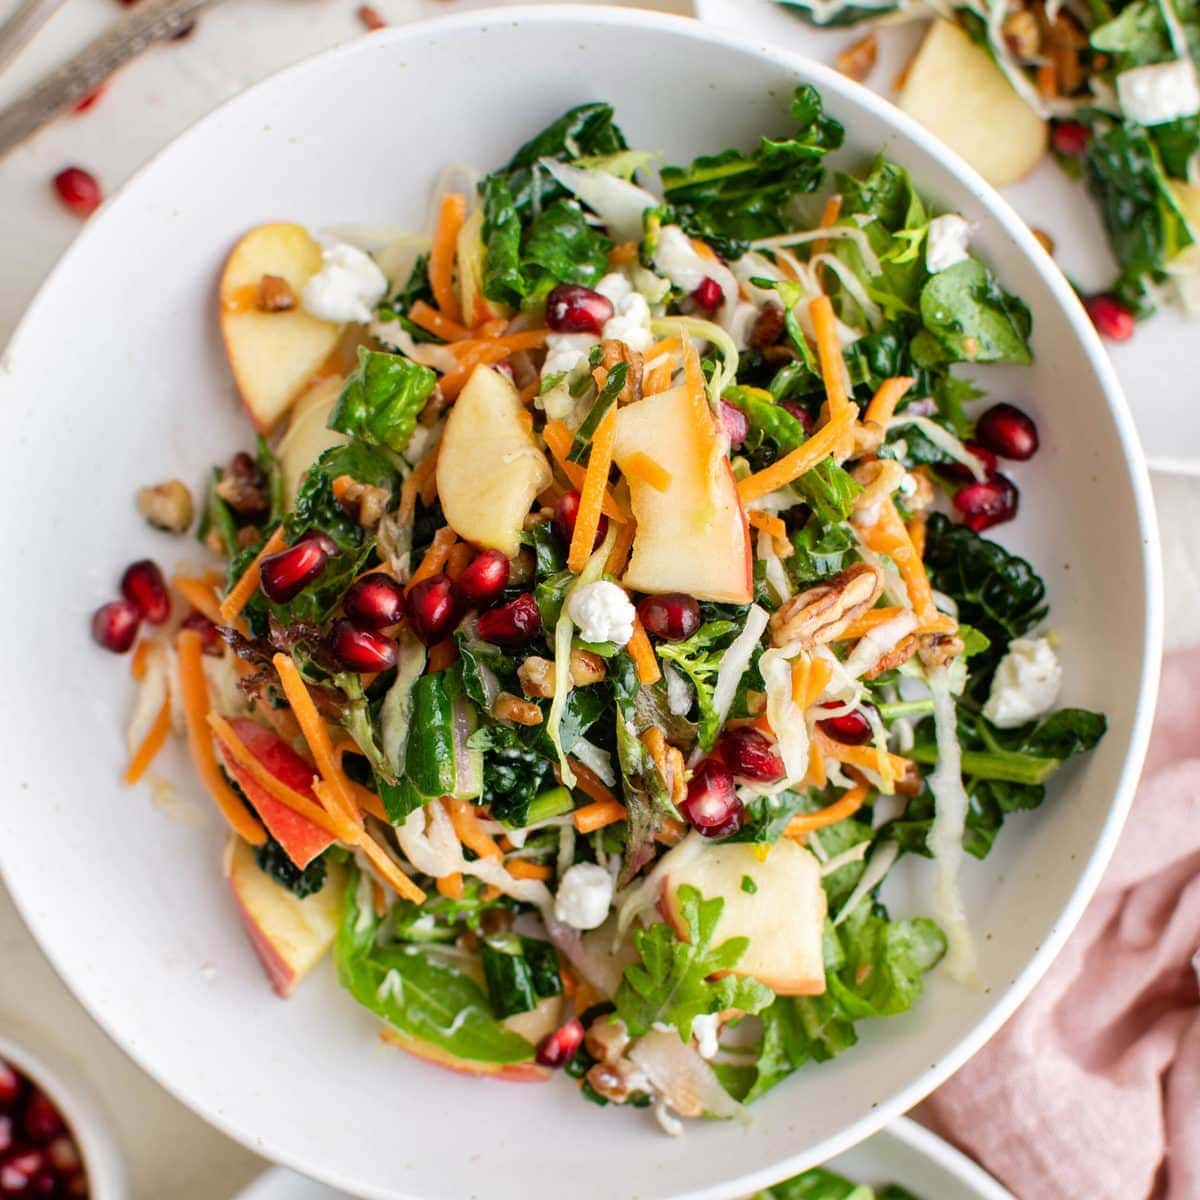 Winter Salad with Tangy Homemade Vinaigrette